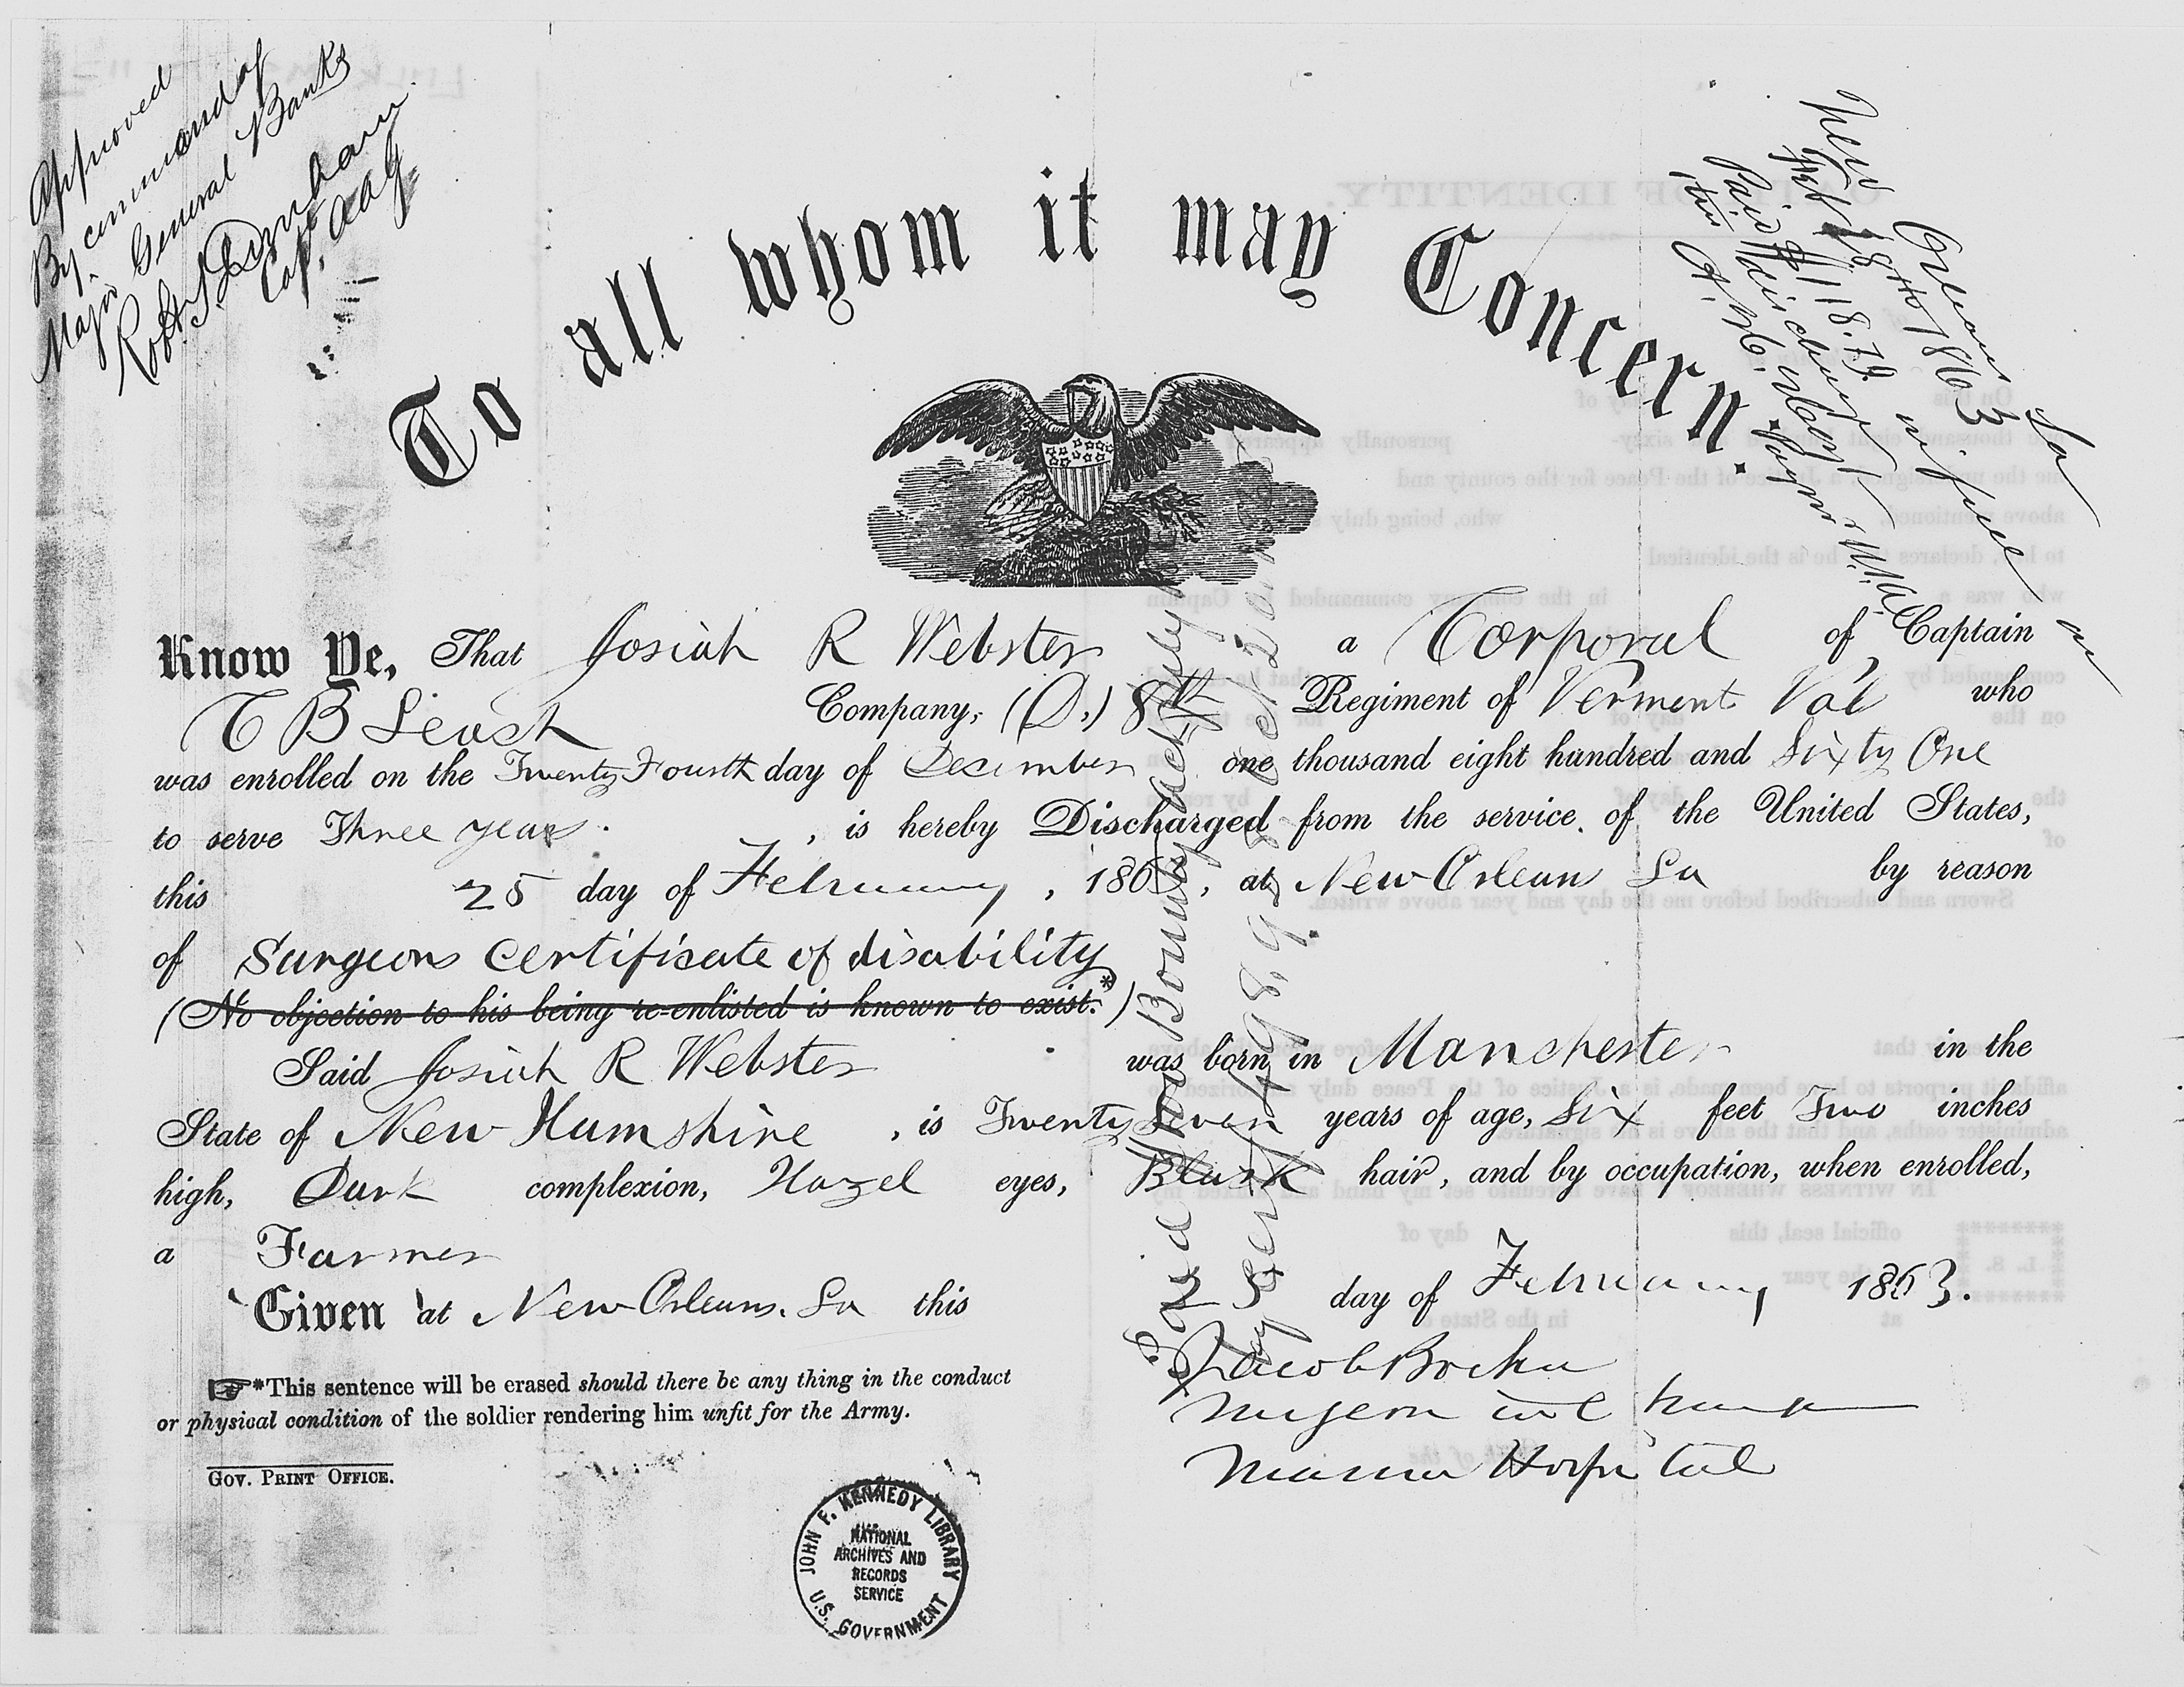 Josiah_Webster_Civil_War_Discharge_Certificate_February,_1863_-_NARA_-_192986